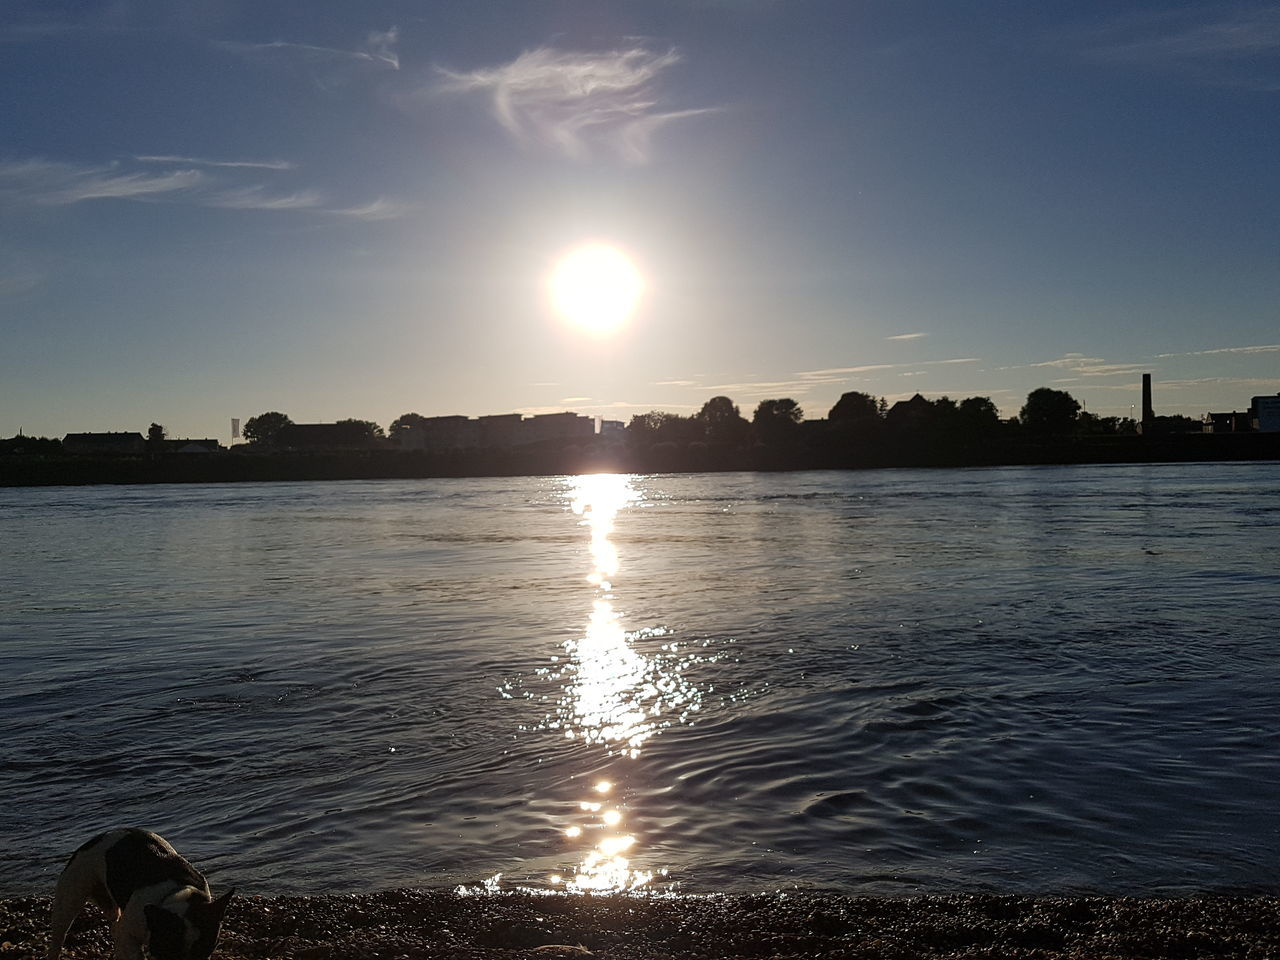 sunset, water, sun, tranquil scene, tranquility, nature, sunbeam, no people, scenics, beauty in nature, outdoors, sunlight, reflection, sky, cloud - sky, sea, beach, day